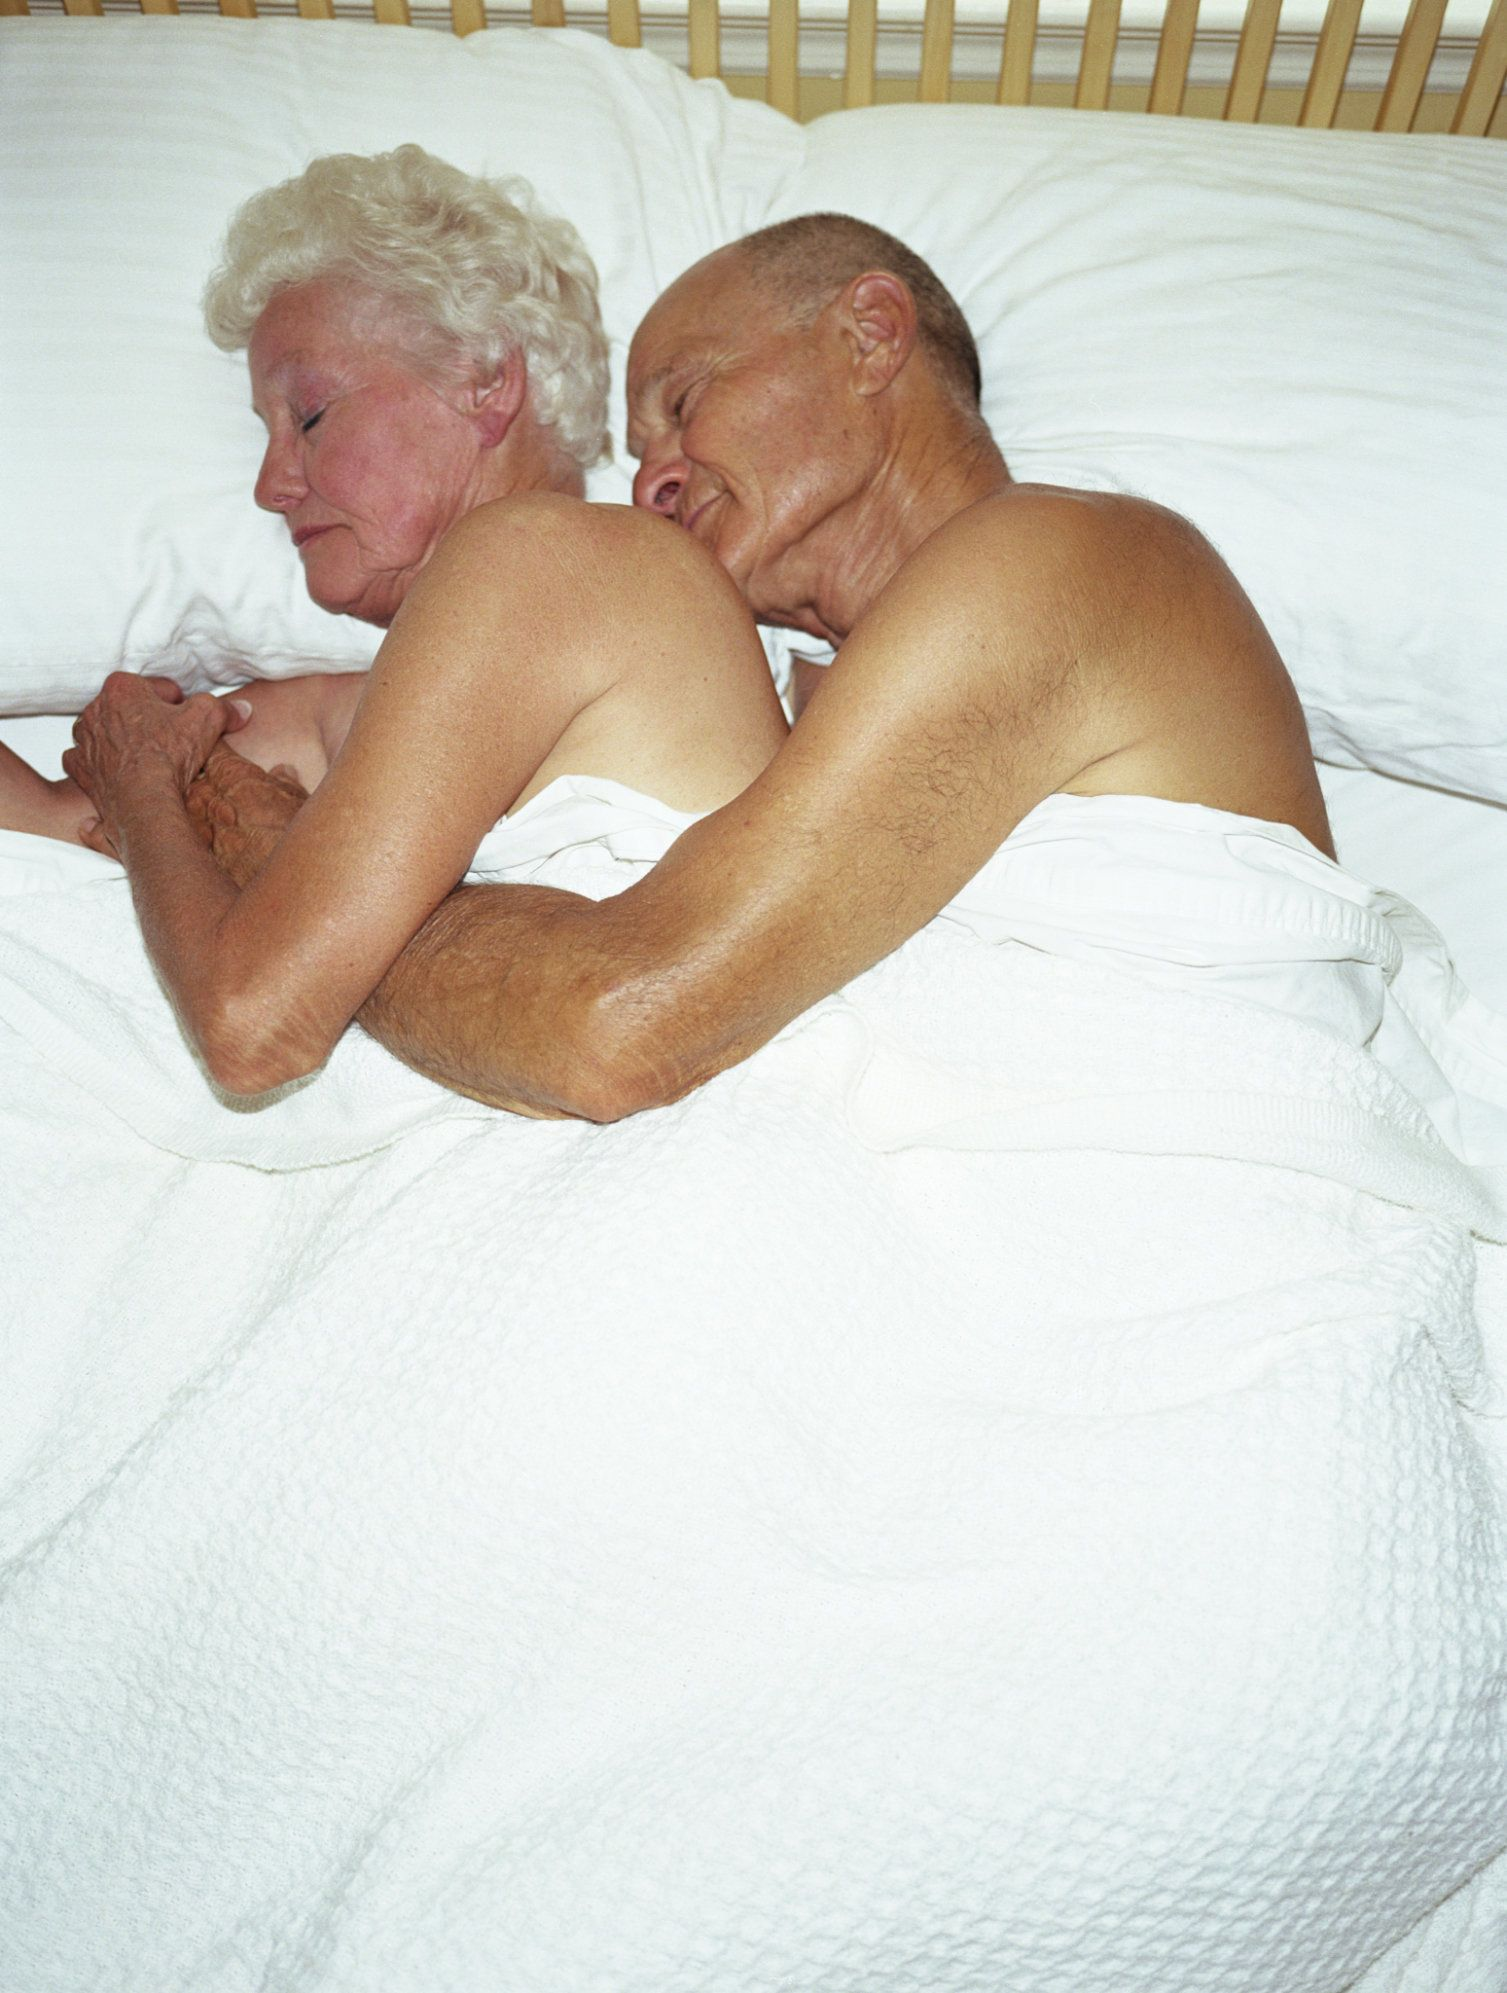 Sex at 70 years of age